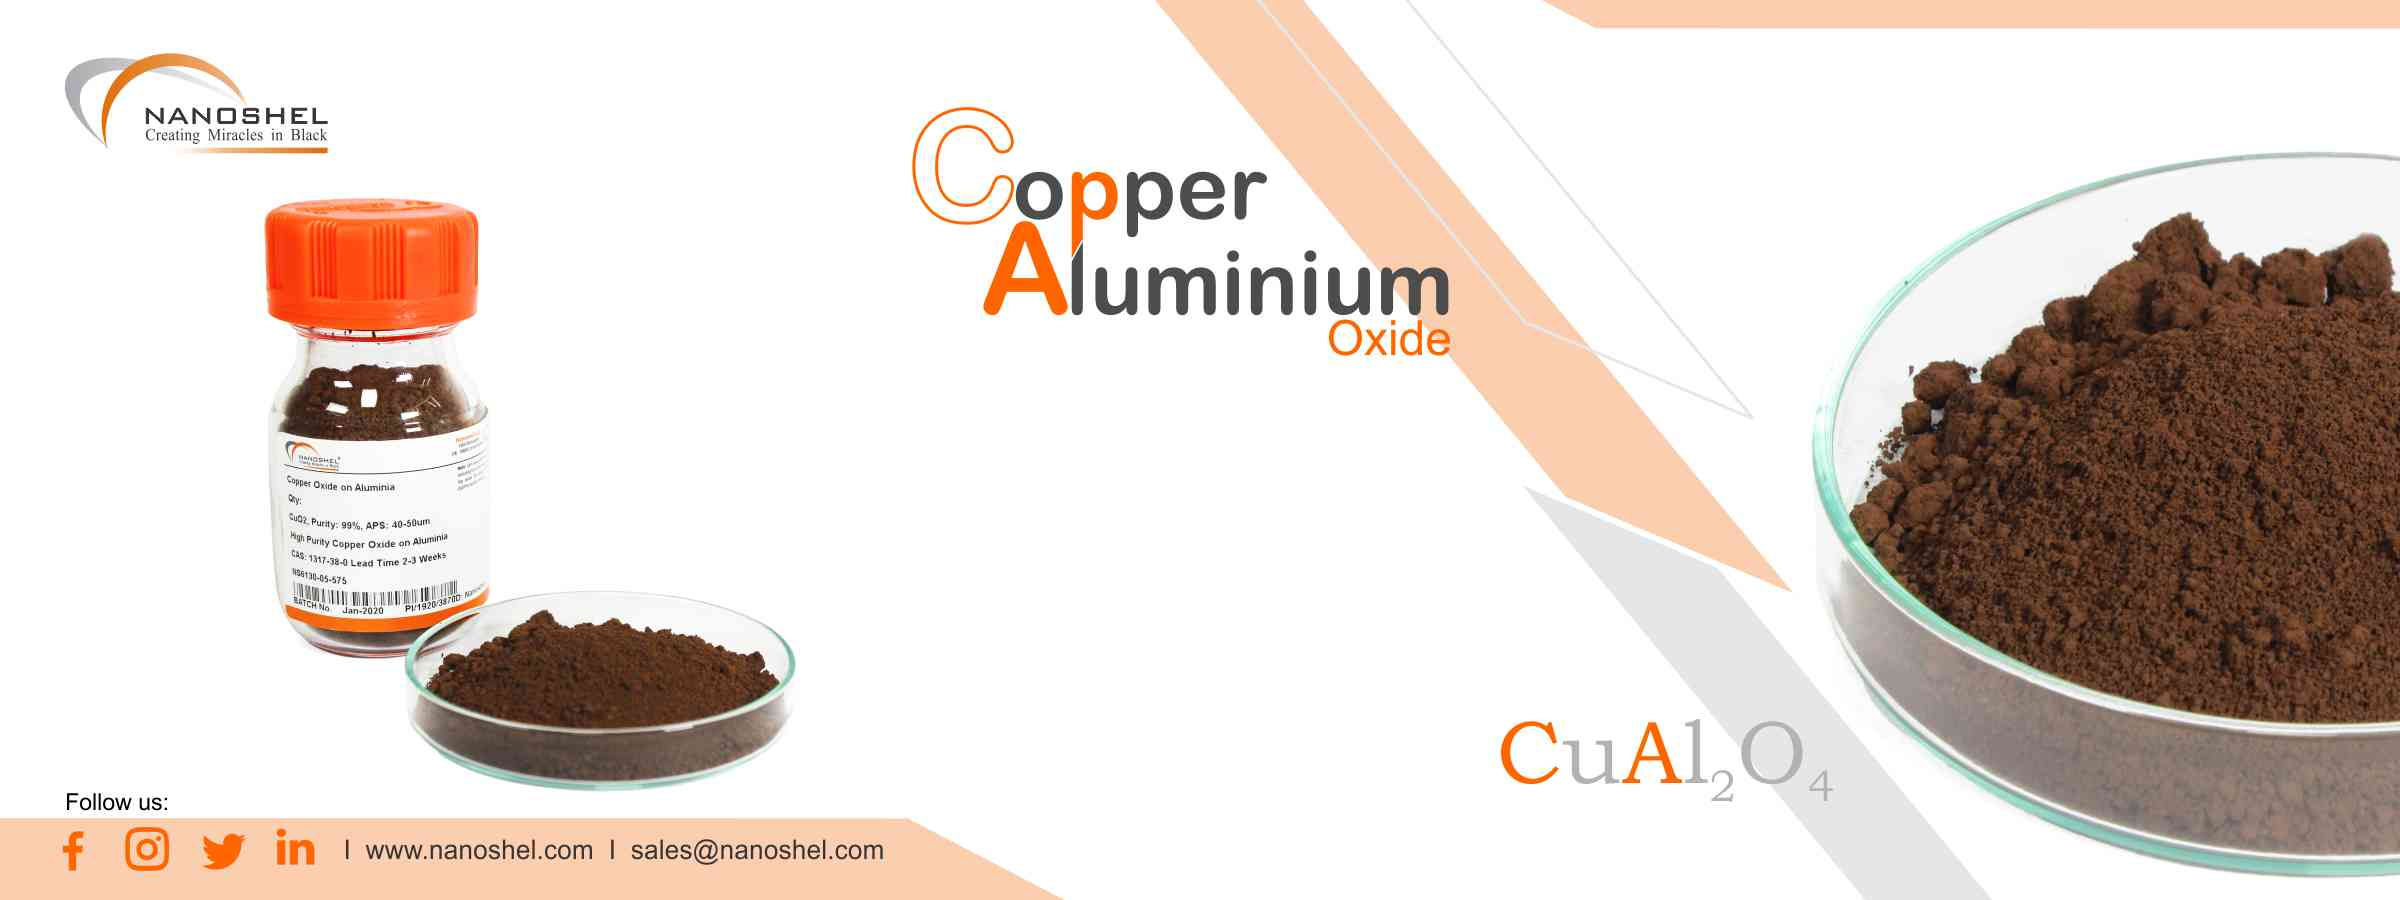 Copper Aluminum Oxide Powder